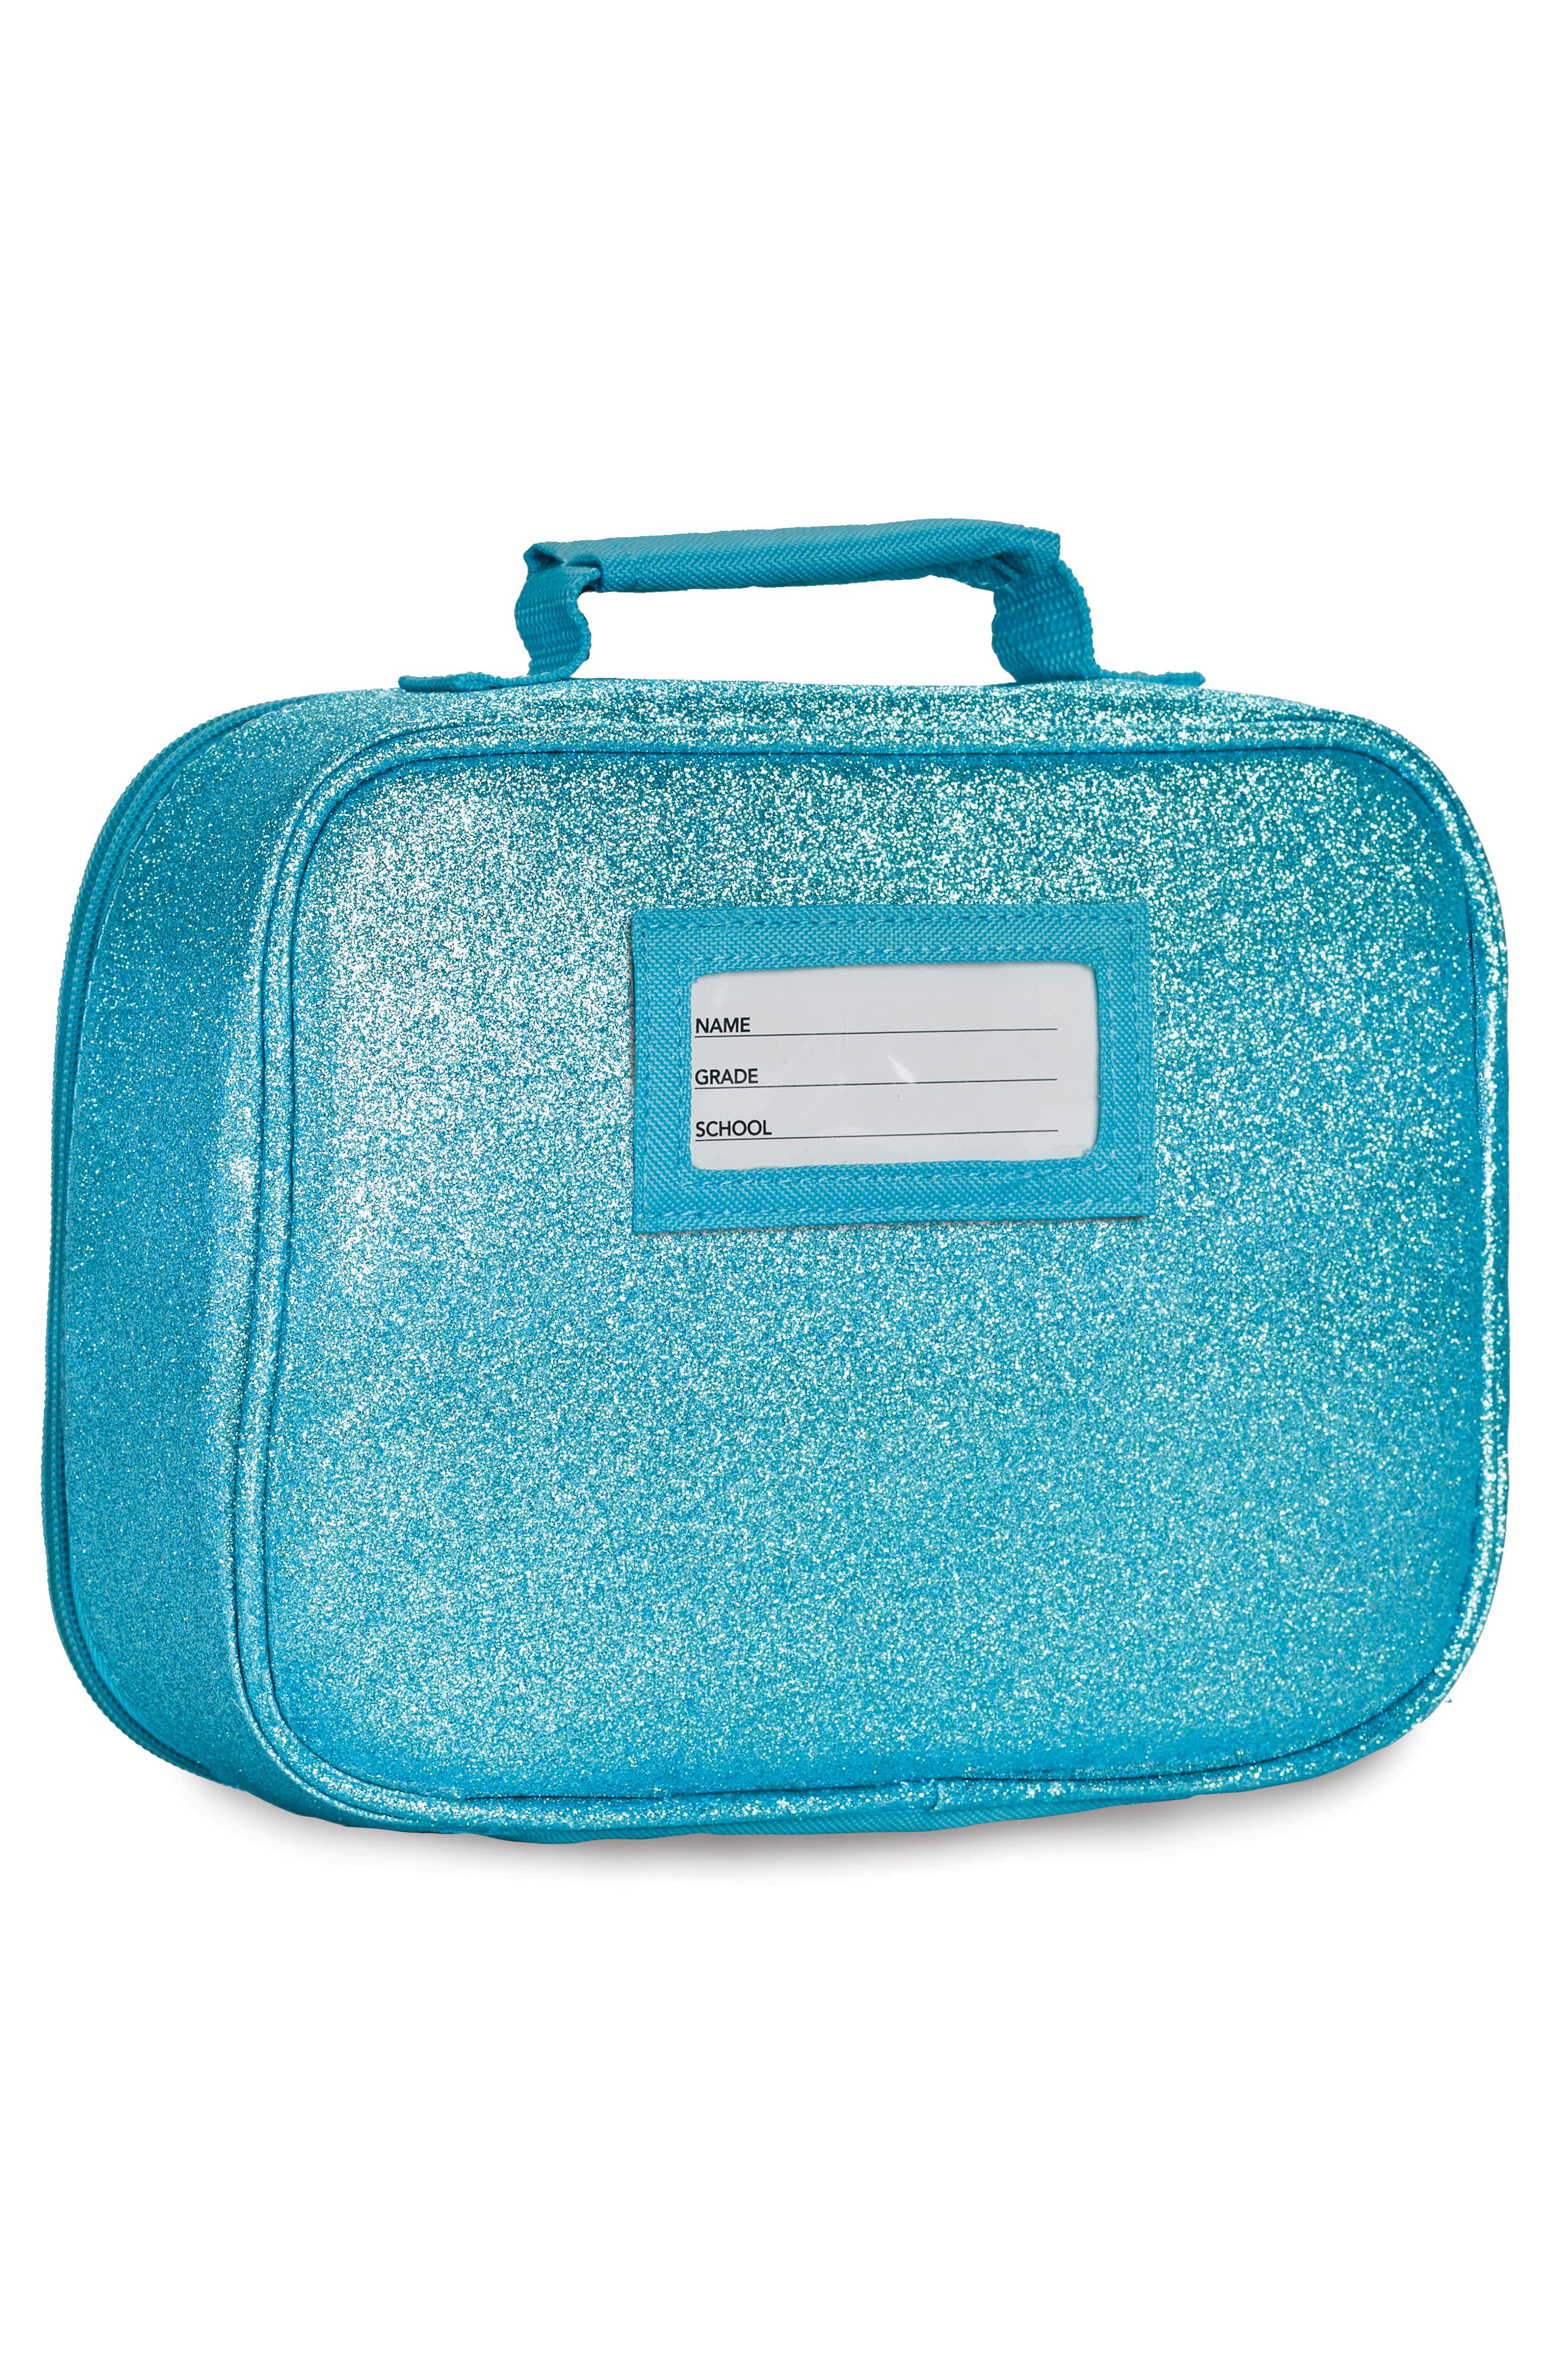 Sparkalicious Water Resistant Lunch Box,                             Alternate thumbnail 2, color,                             440